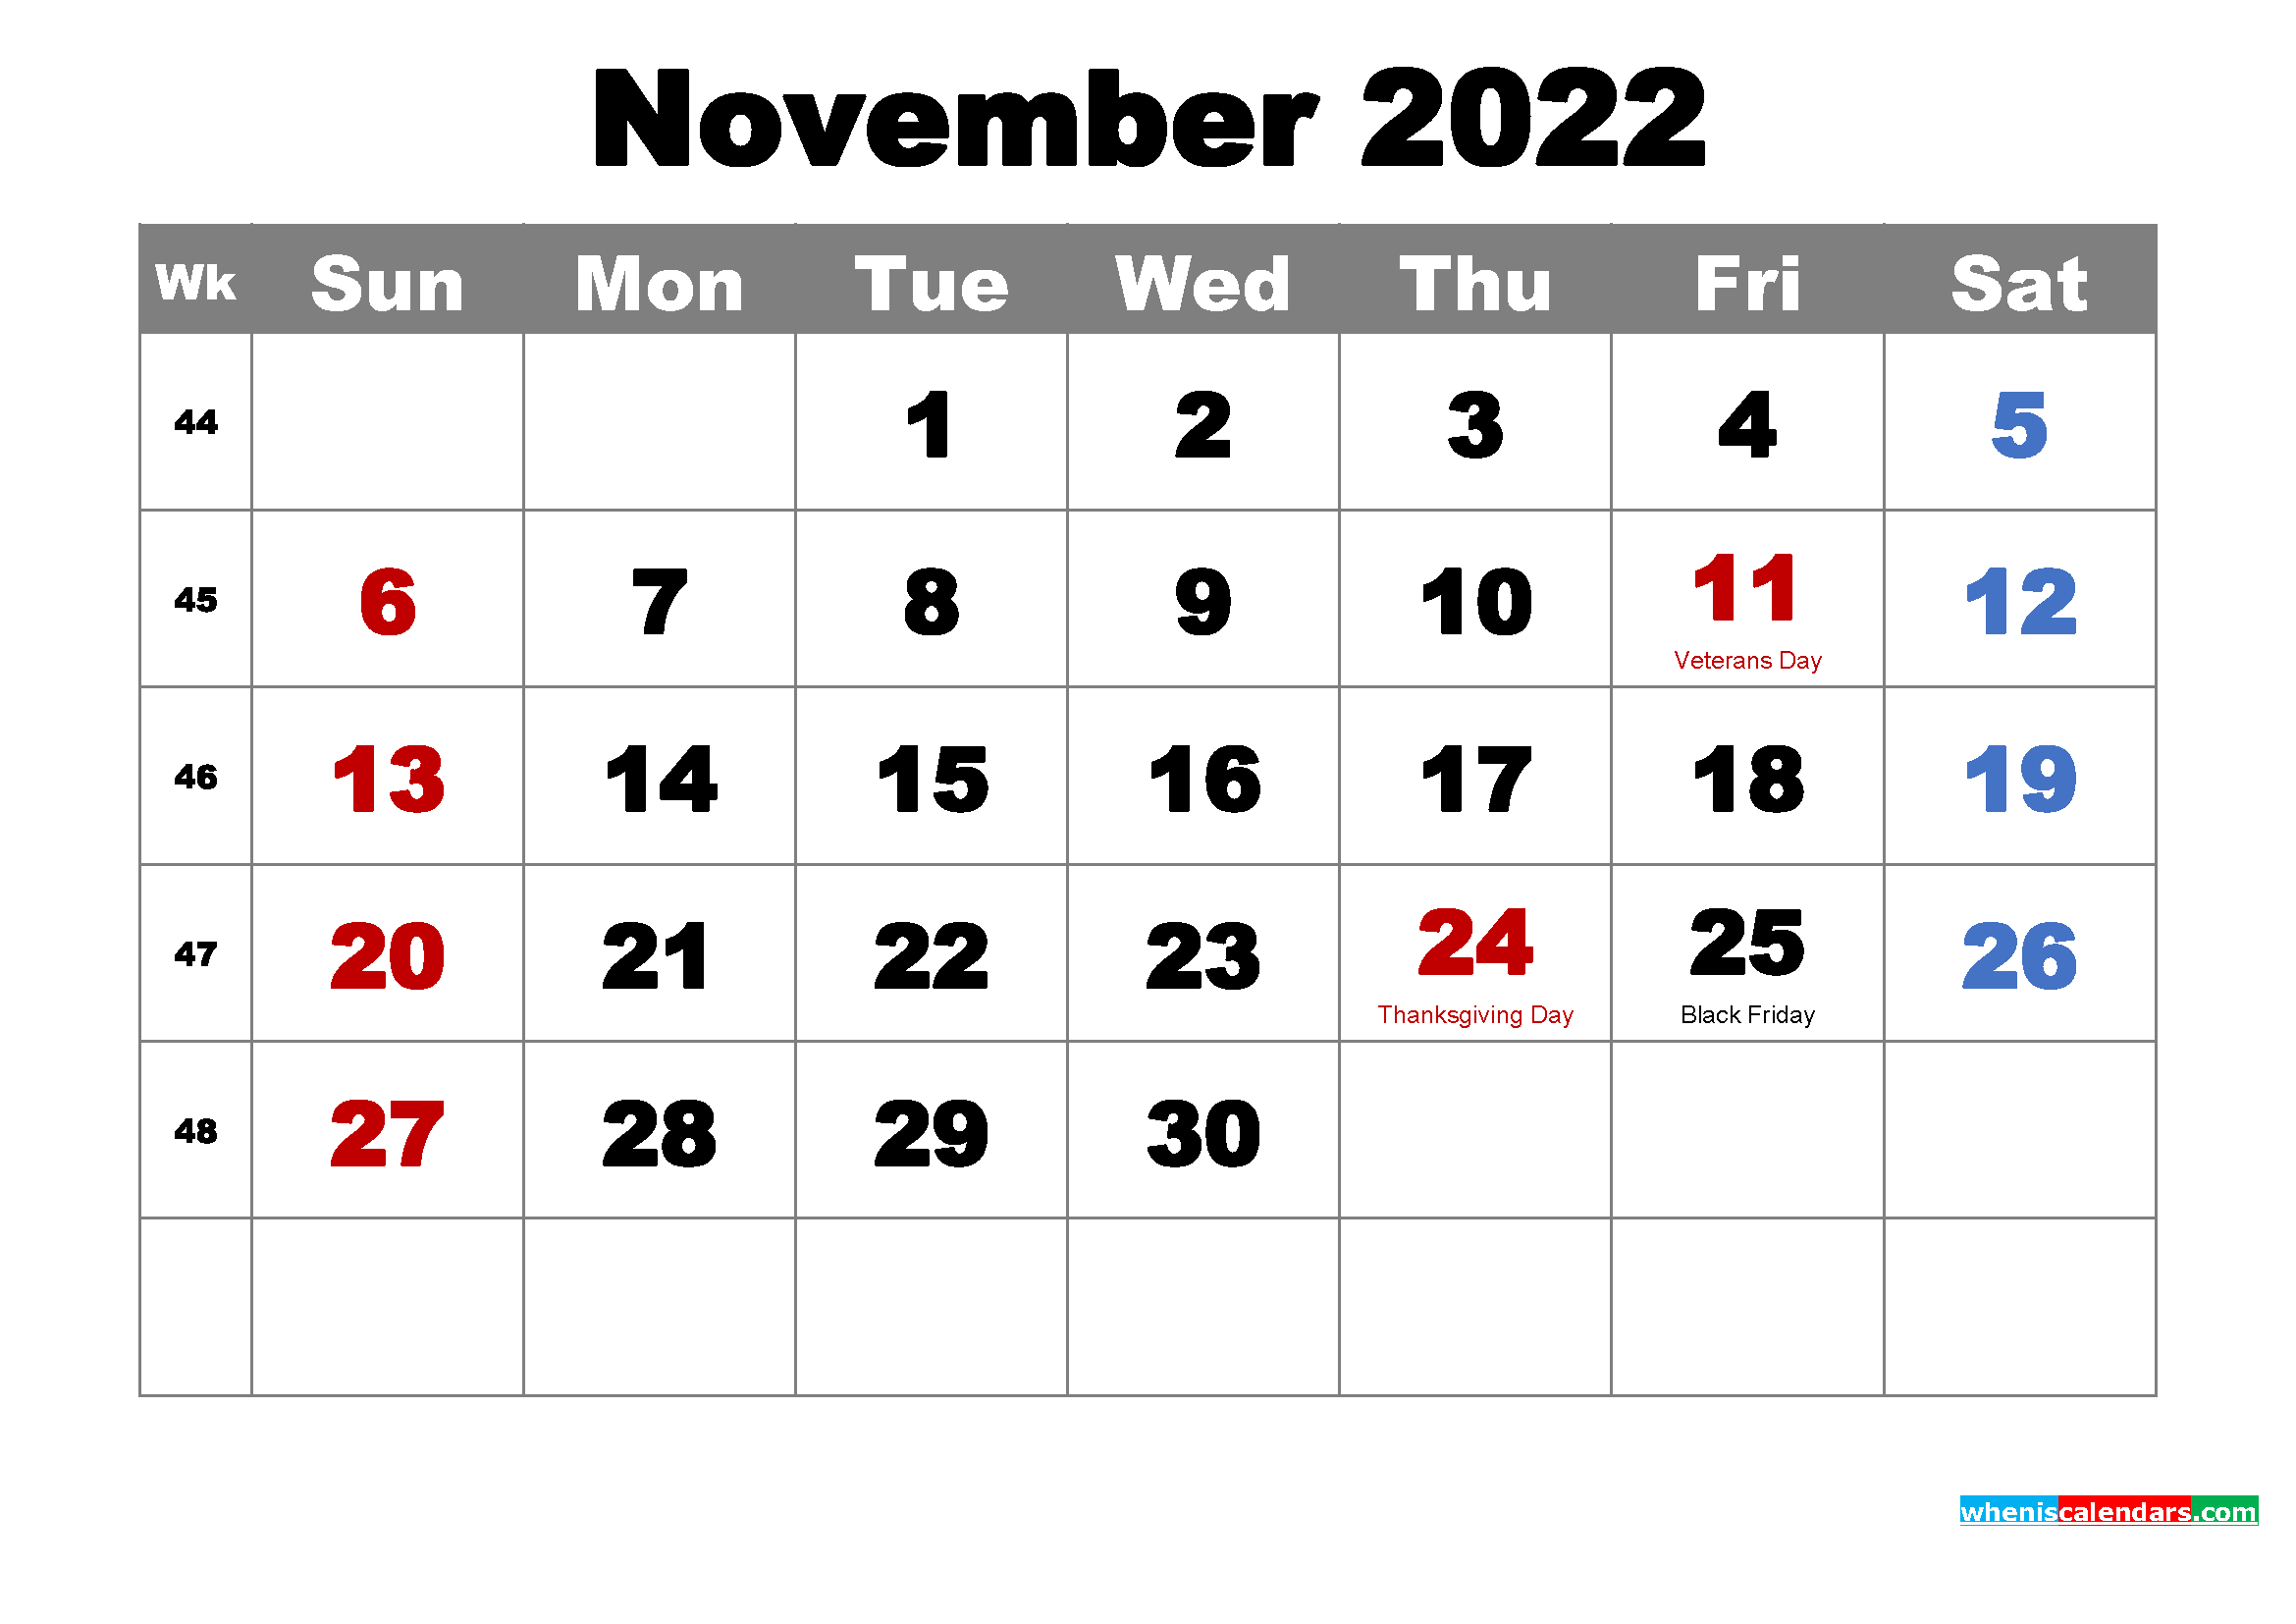 Printable November 2022 Calendar by Month